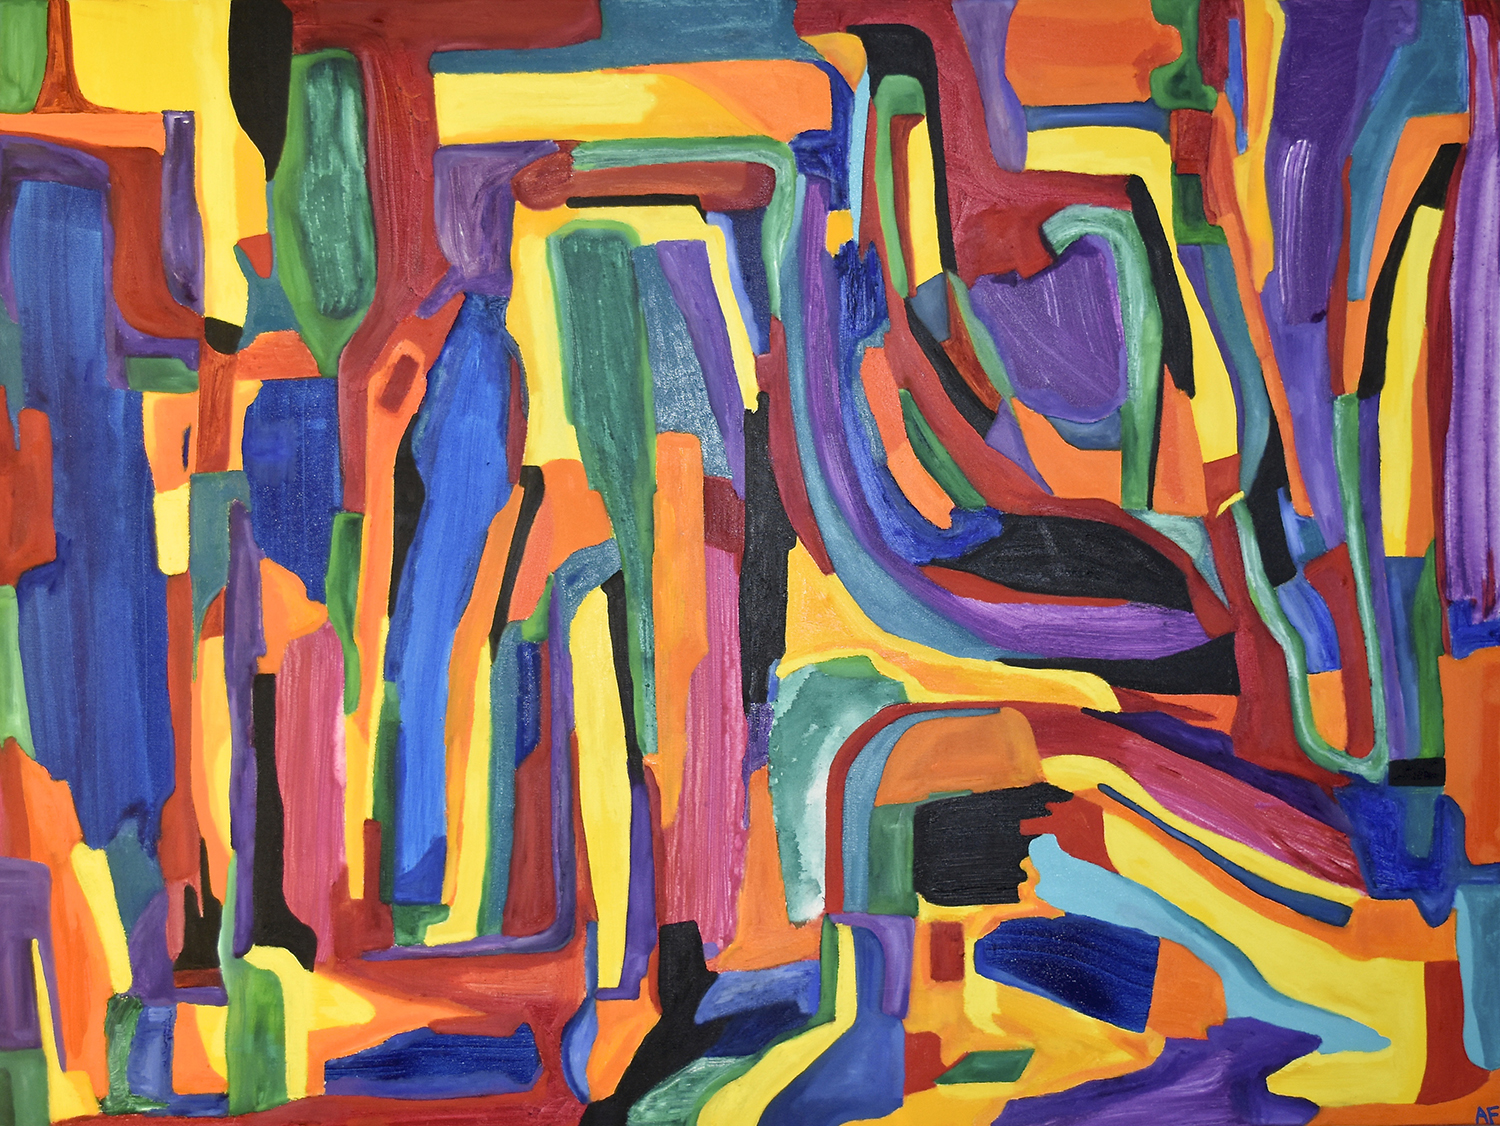 Flowing Melody, 2018 | Oil and acrylic on canvas | 91 x 122 cm | £,2400